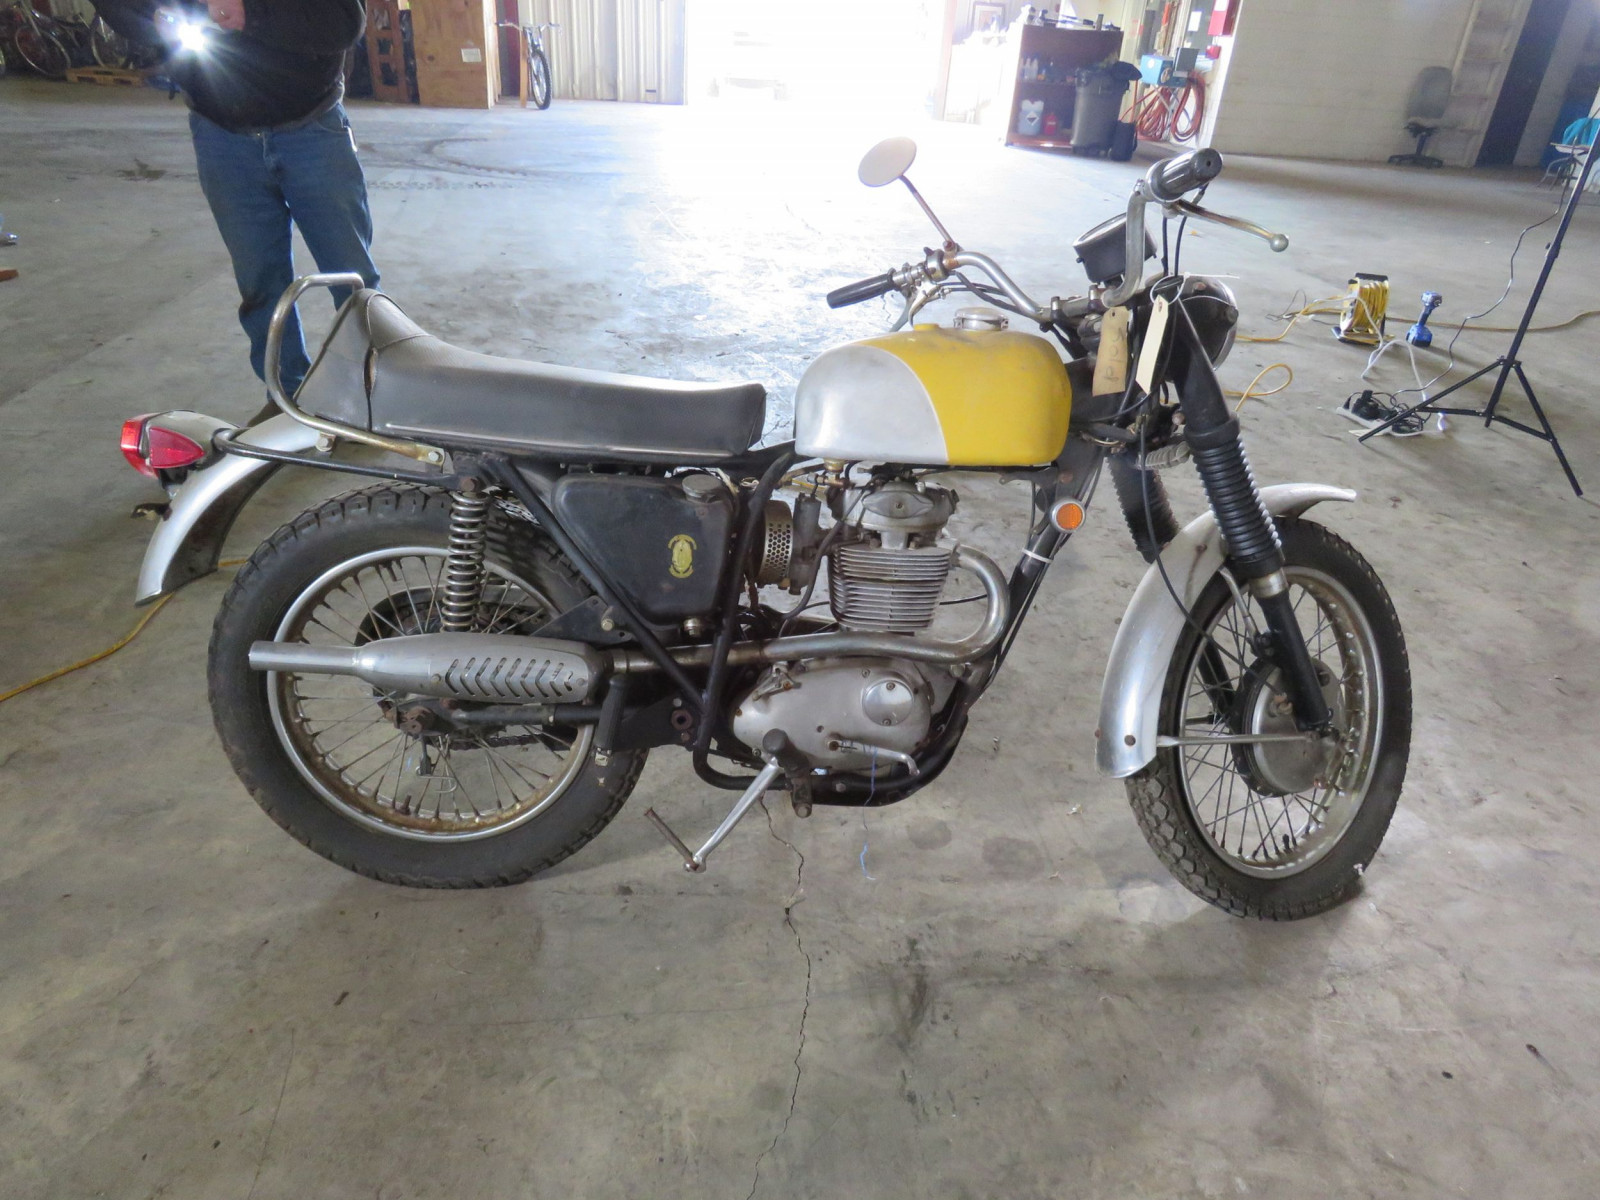 1968 BSA B44 Victor Special Motorcycle - Image 5